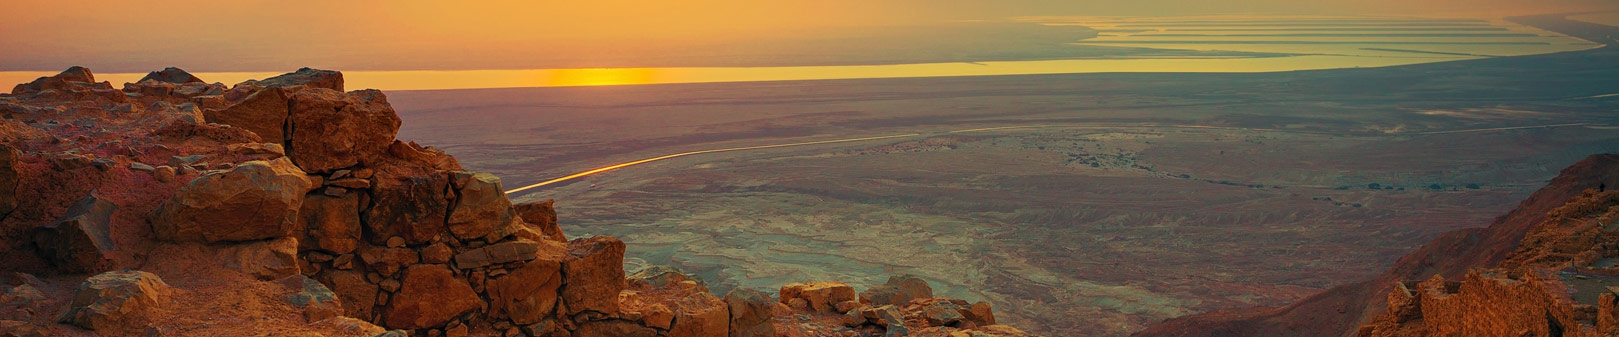 A Sunset - Trips to Israel